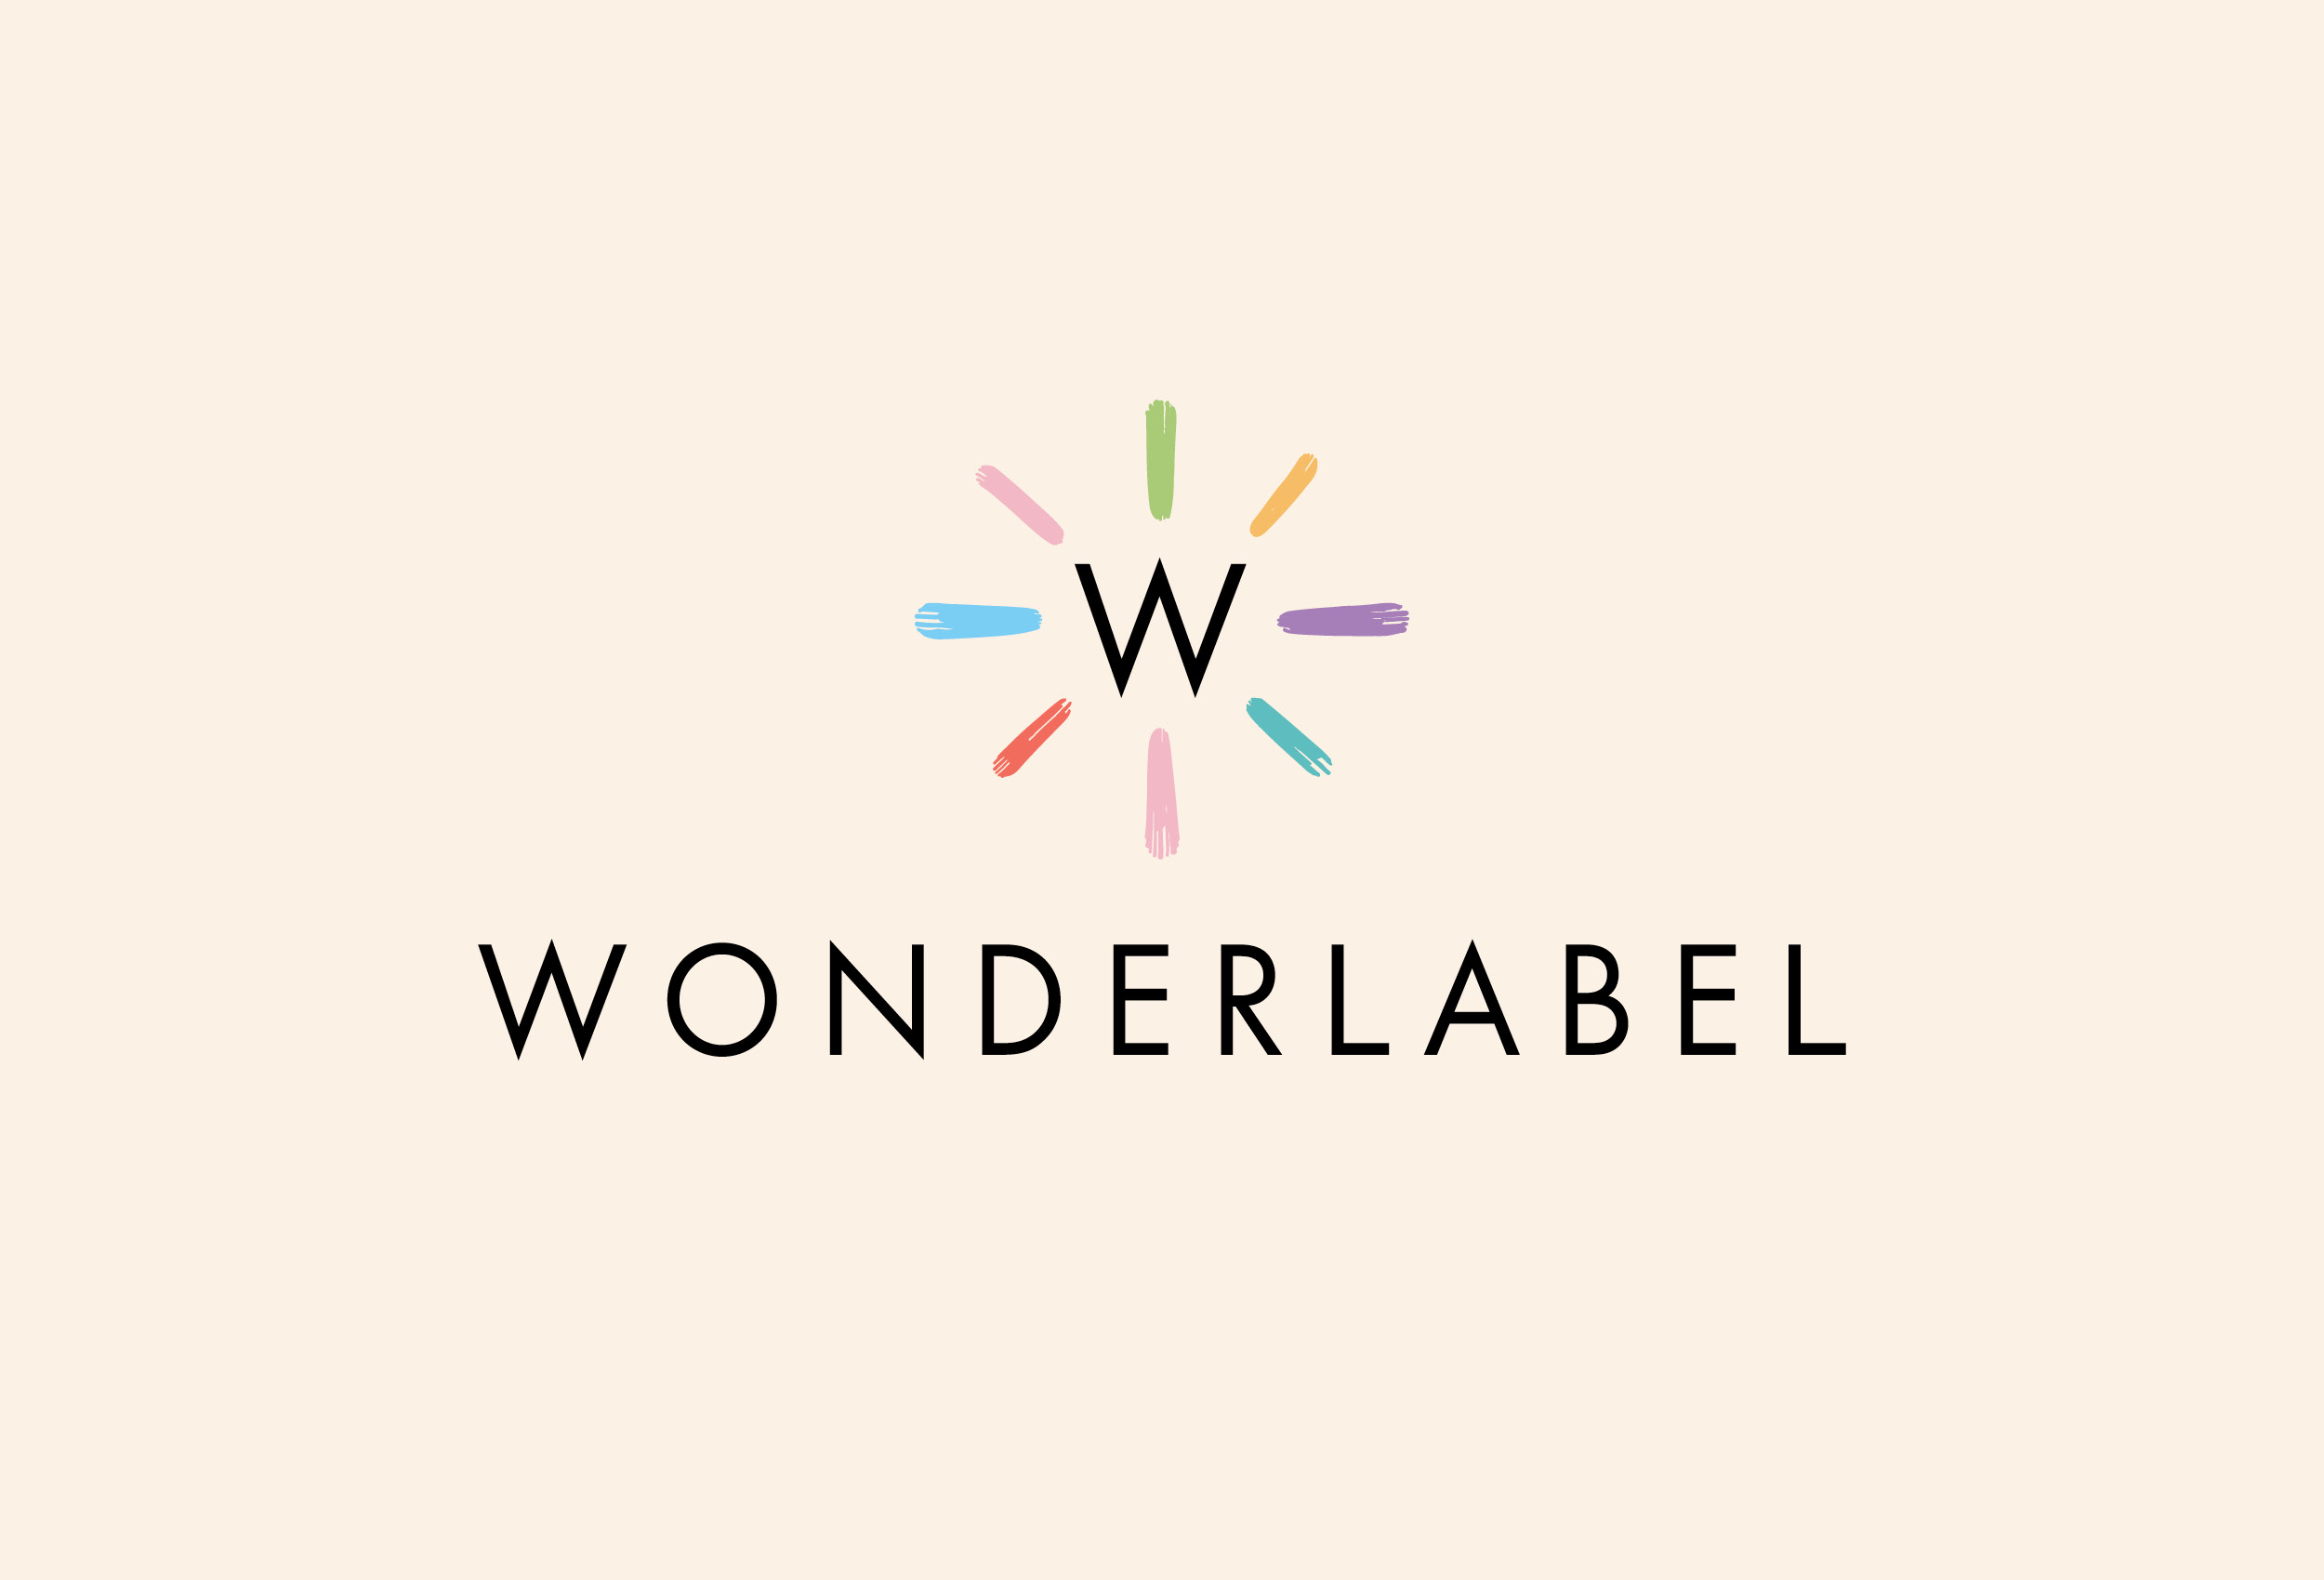 Cover image: Wonder Label